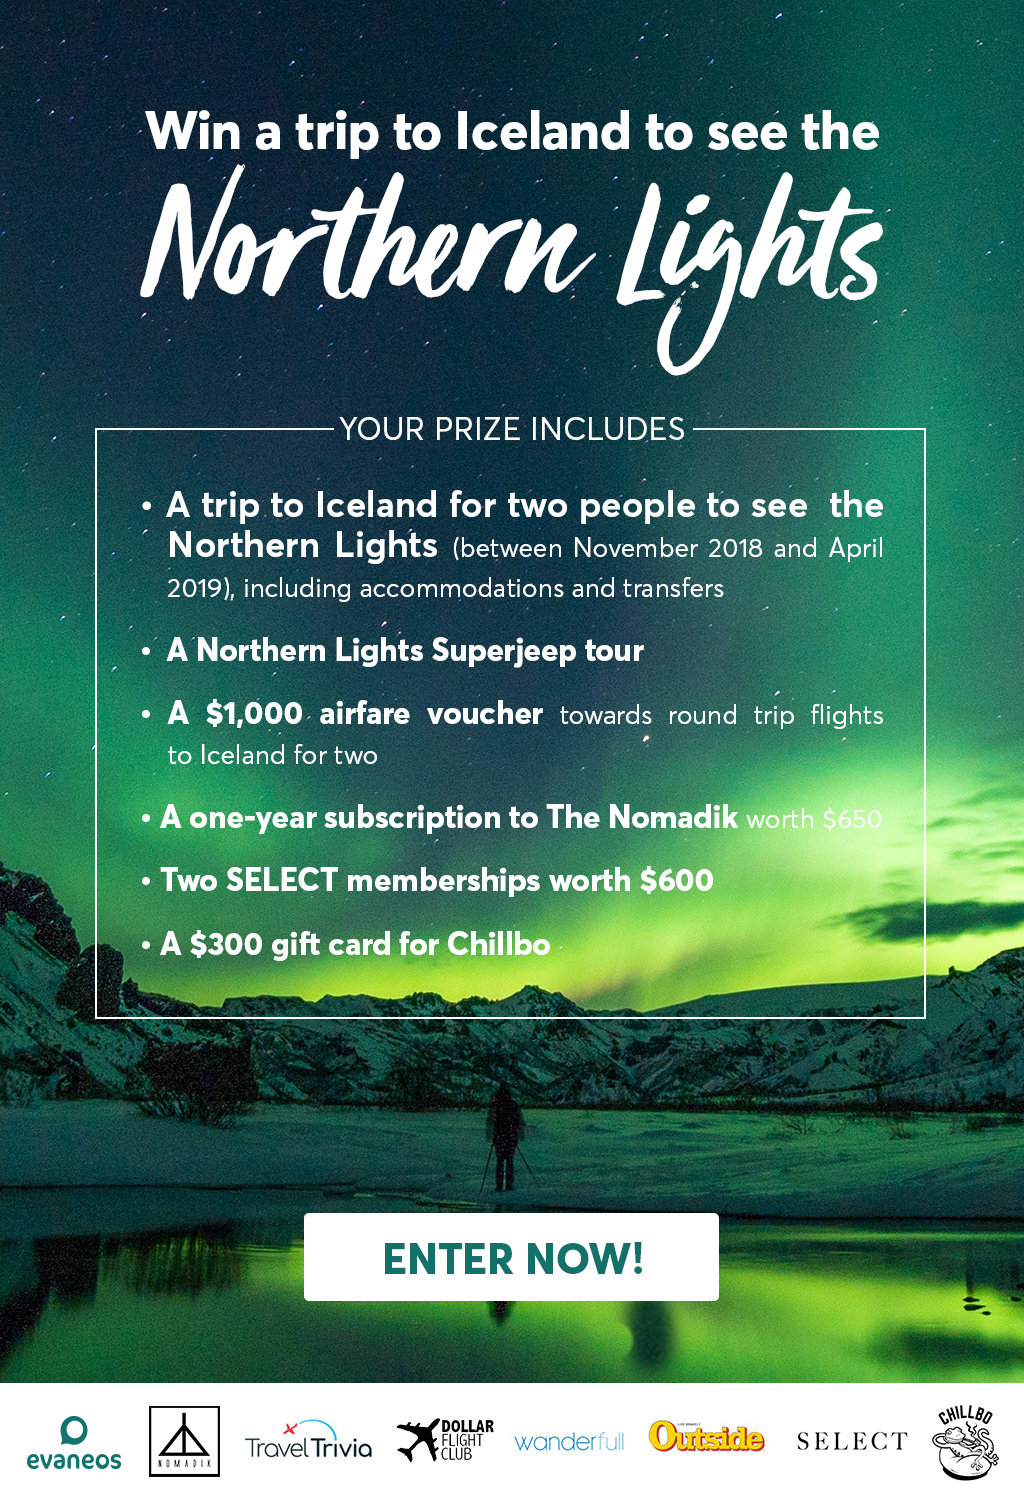 Go to Iceland to see the Northern Lights